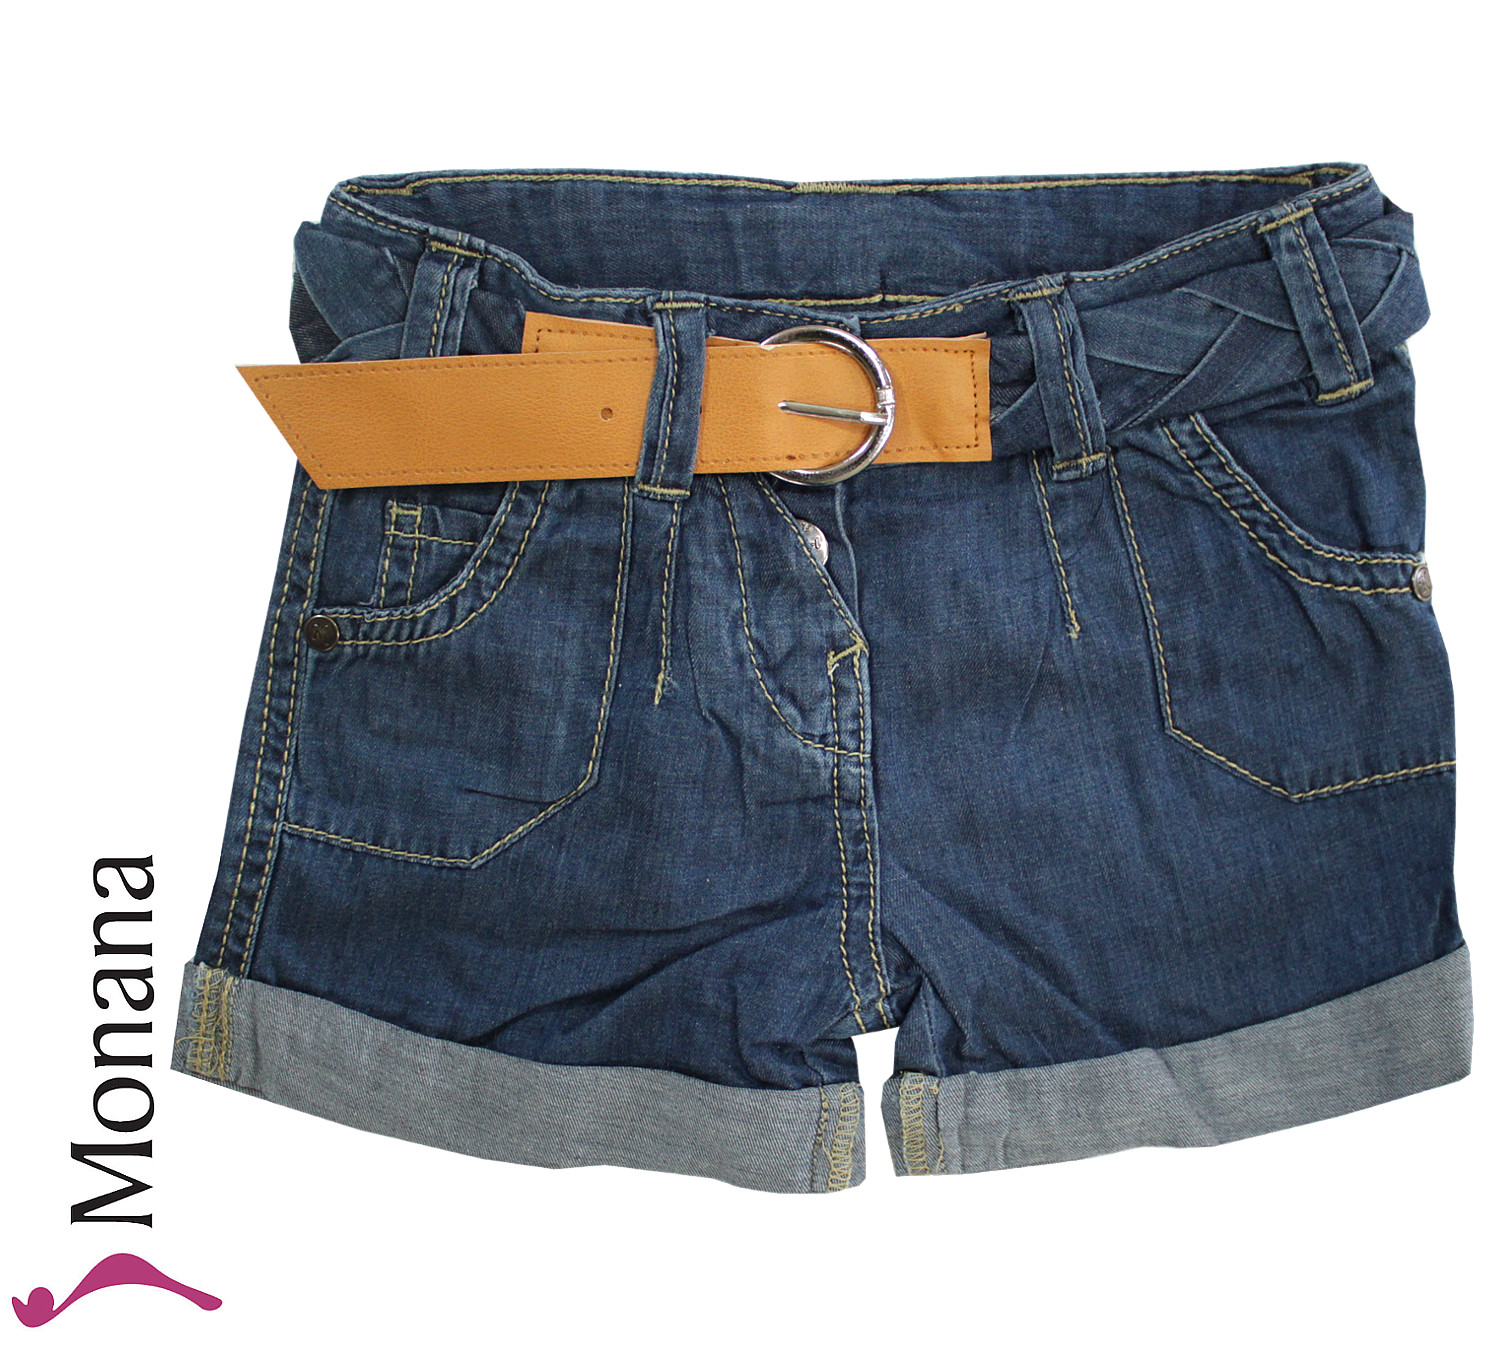 Kanz Jeans-Shorts Indigo goes Red<br>Größe: 98, 110, 116, 128, 134, 140, 146, 152